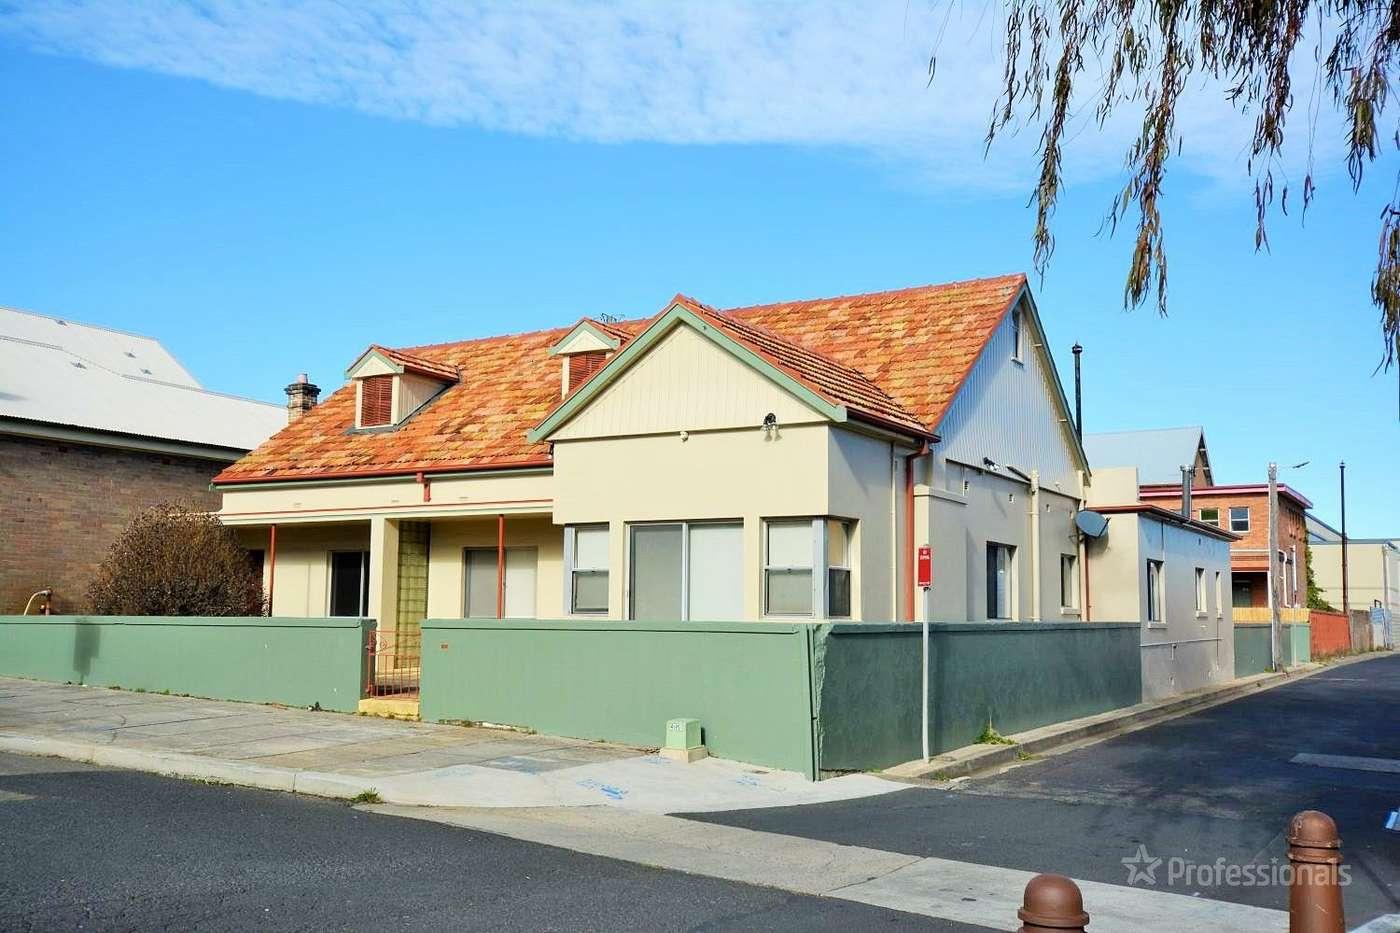 Main view of Homely house listing, 60 Cook Street, Lithgow, NSW 2790